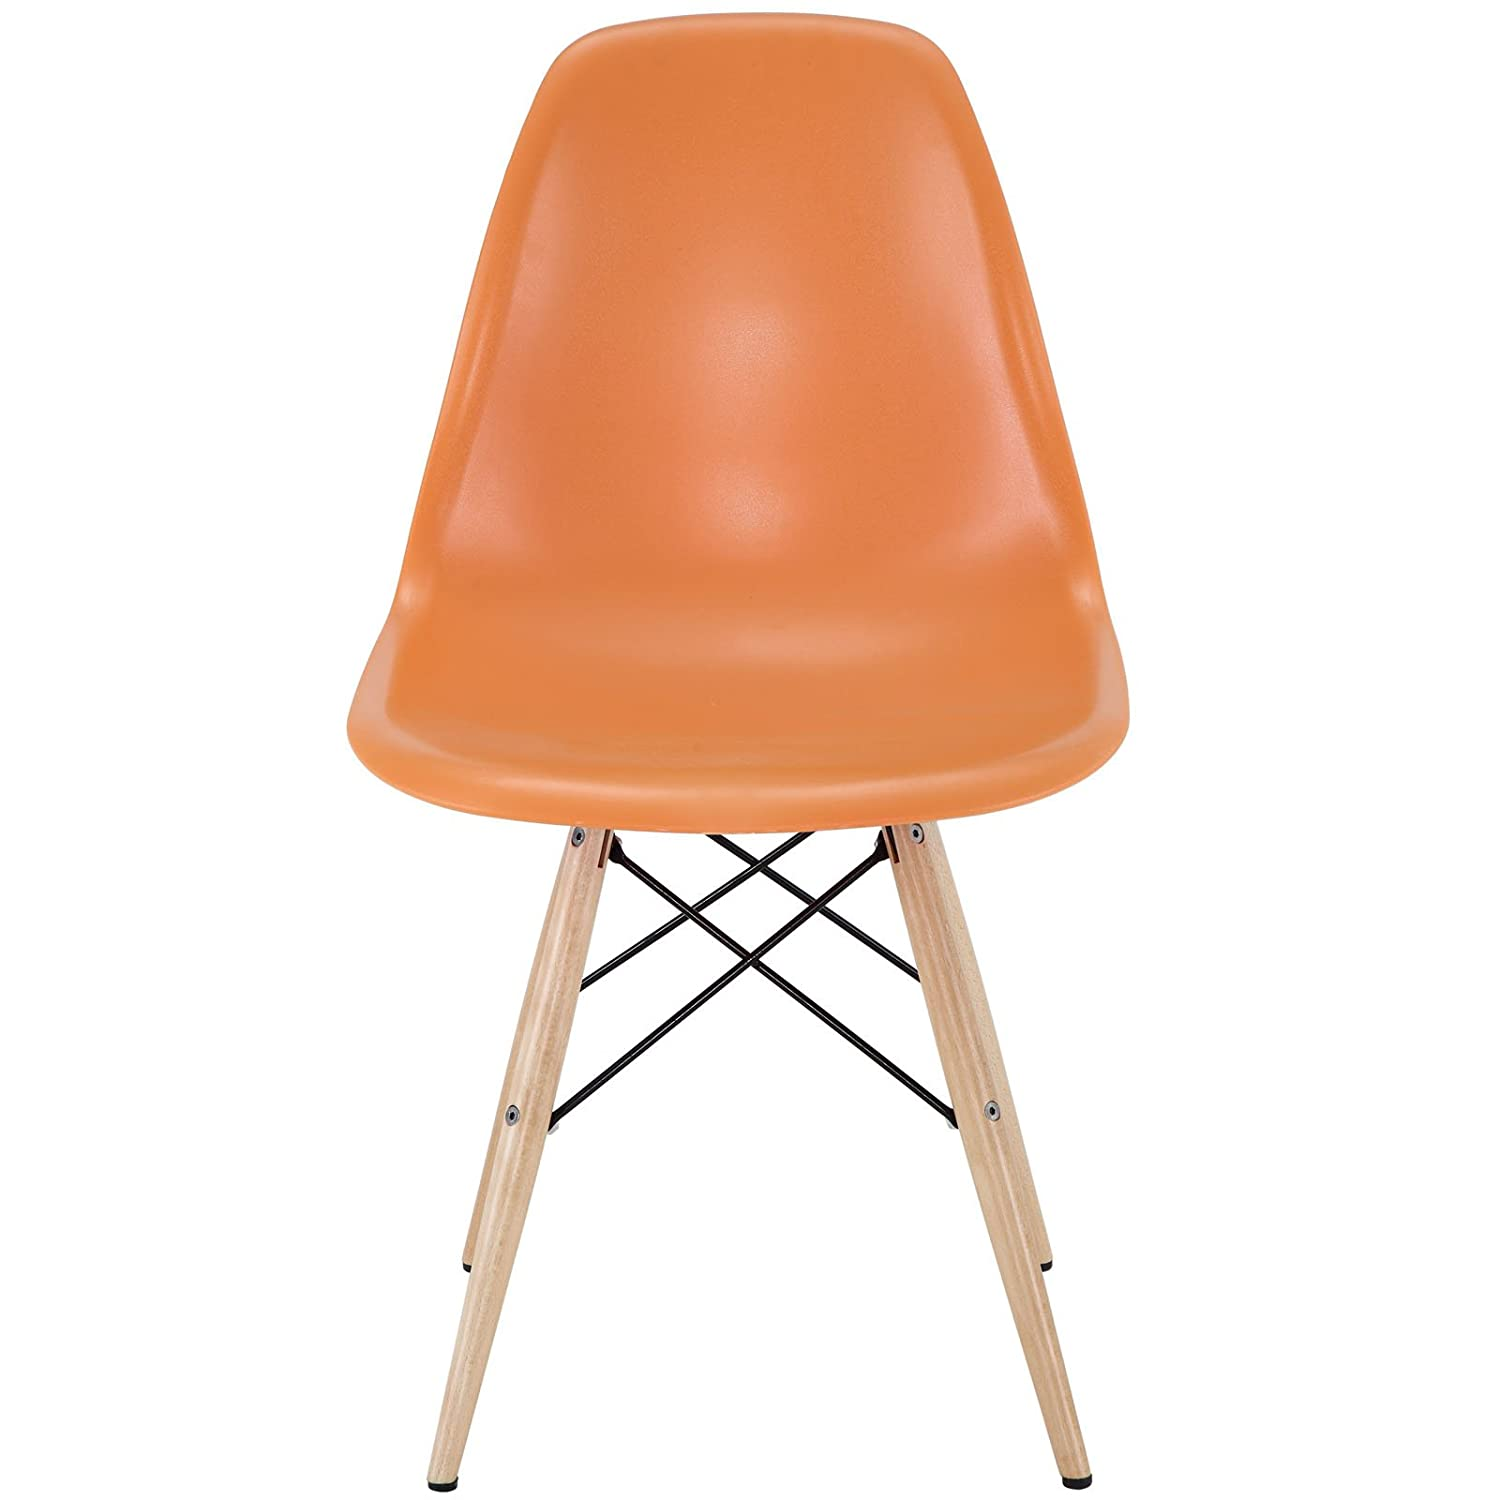 Amazon Modway Plastic Side Chair in Orange with Wooden Base